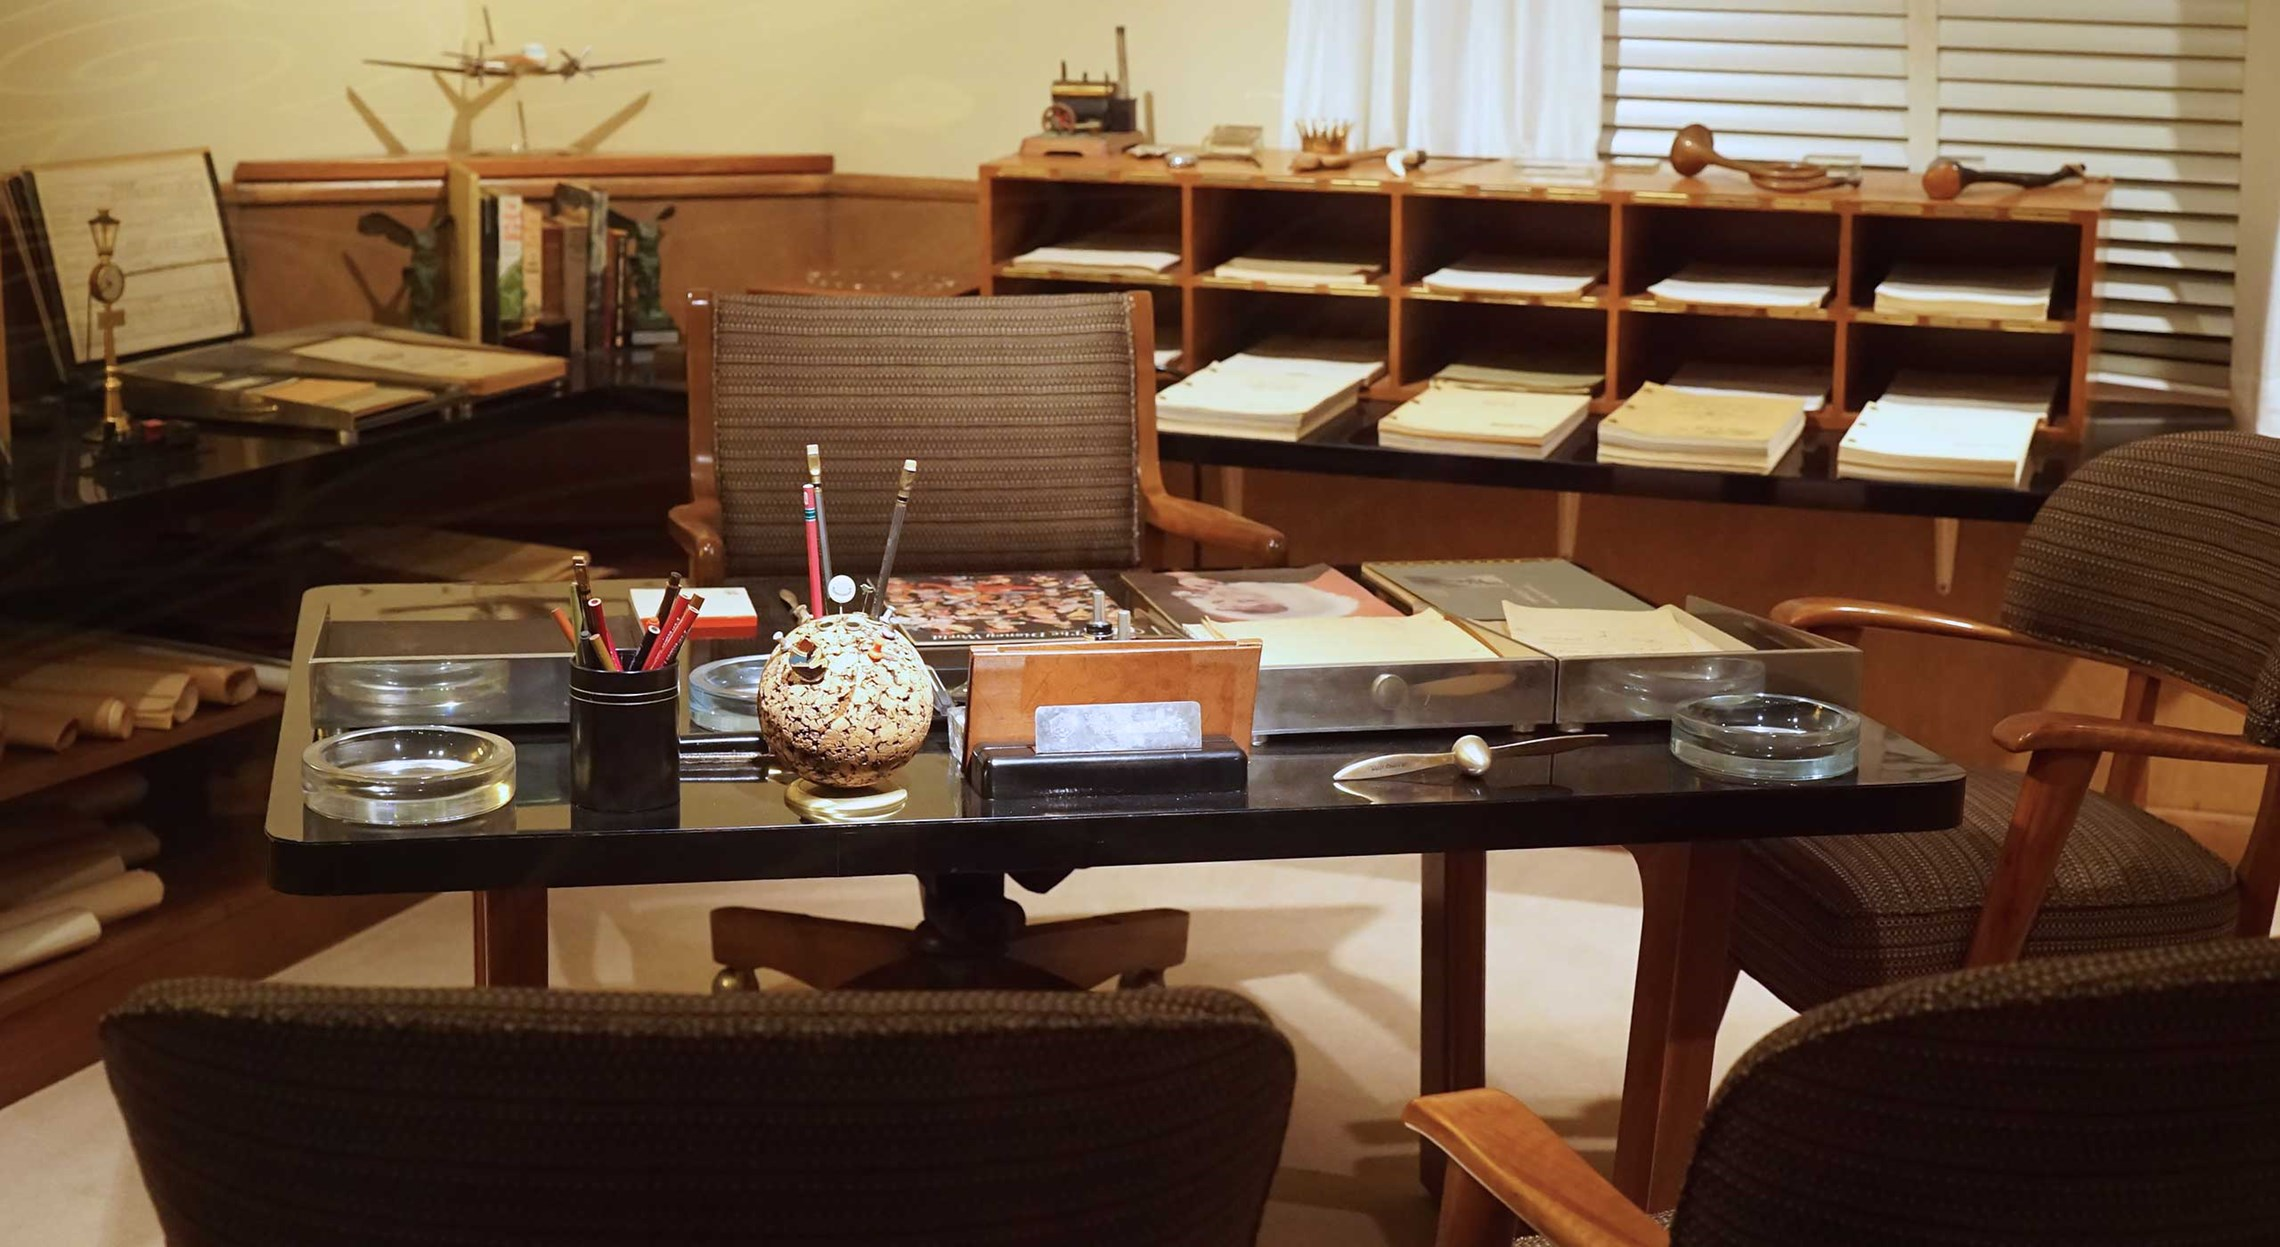 Walt's Desk at One Man's Dream